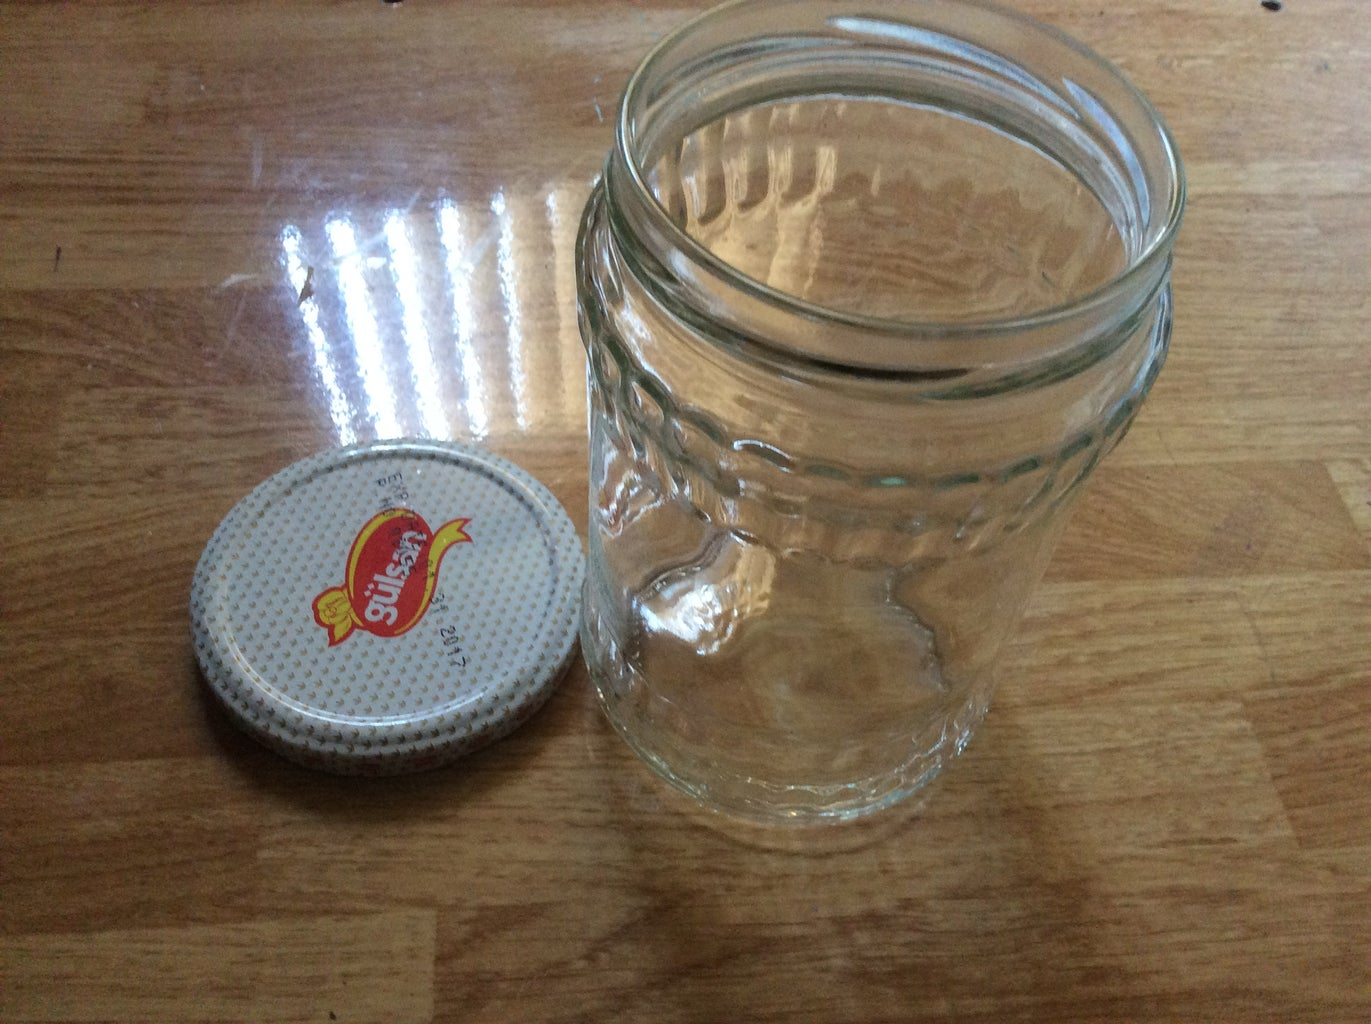 The Jar and Its Top